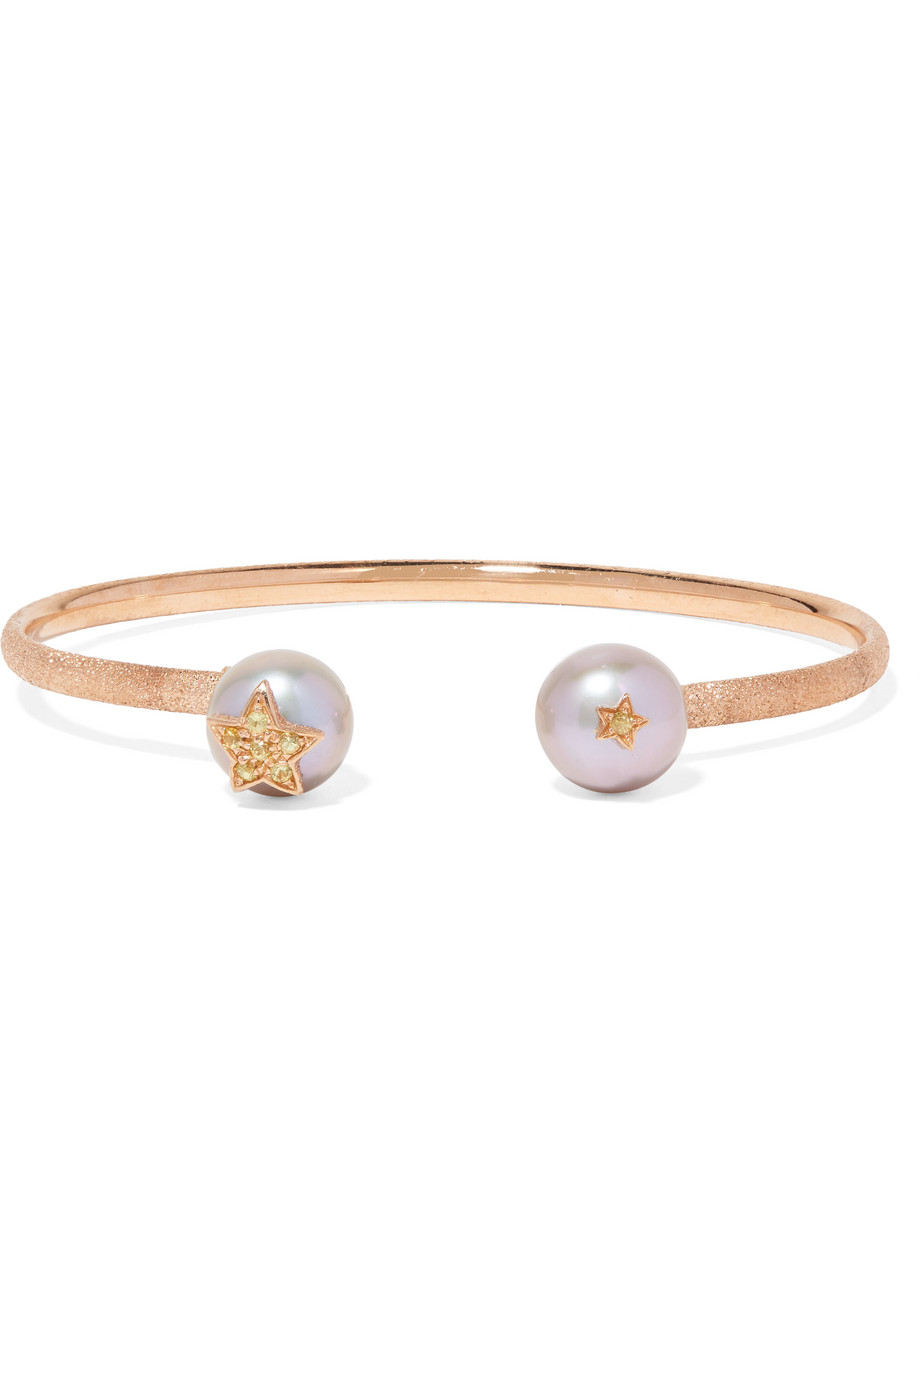 Carolina Bucci Superstellar 18-Karat Rose Gold, Pearl and Sapphire Cuff, Women's